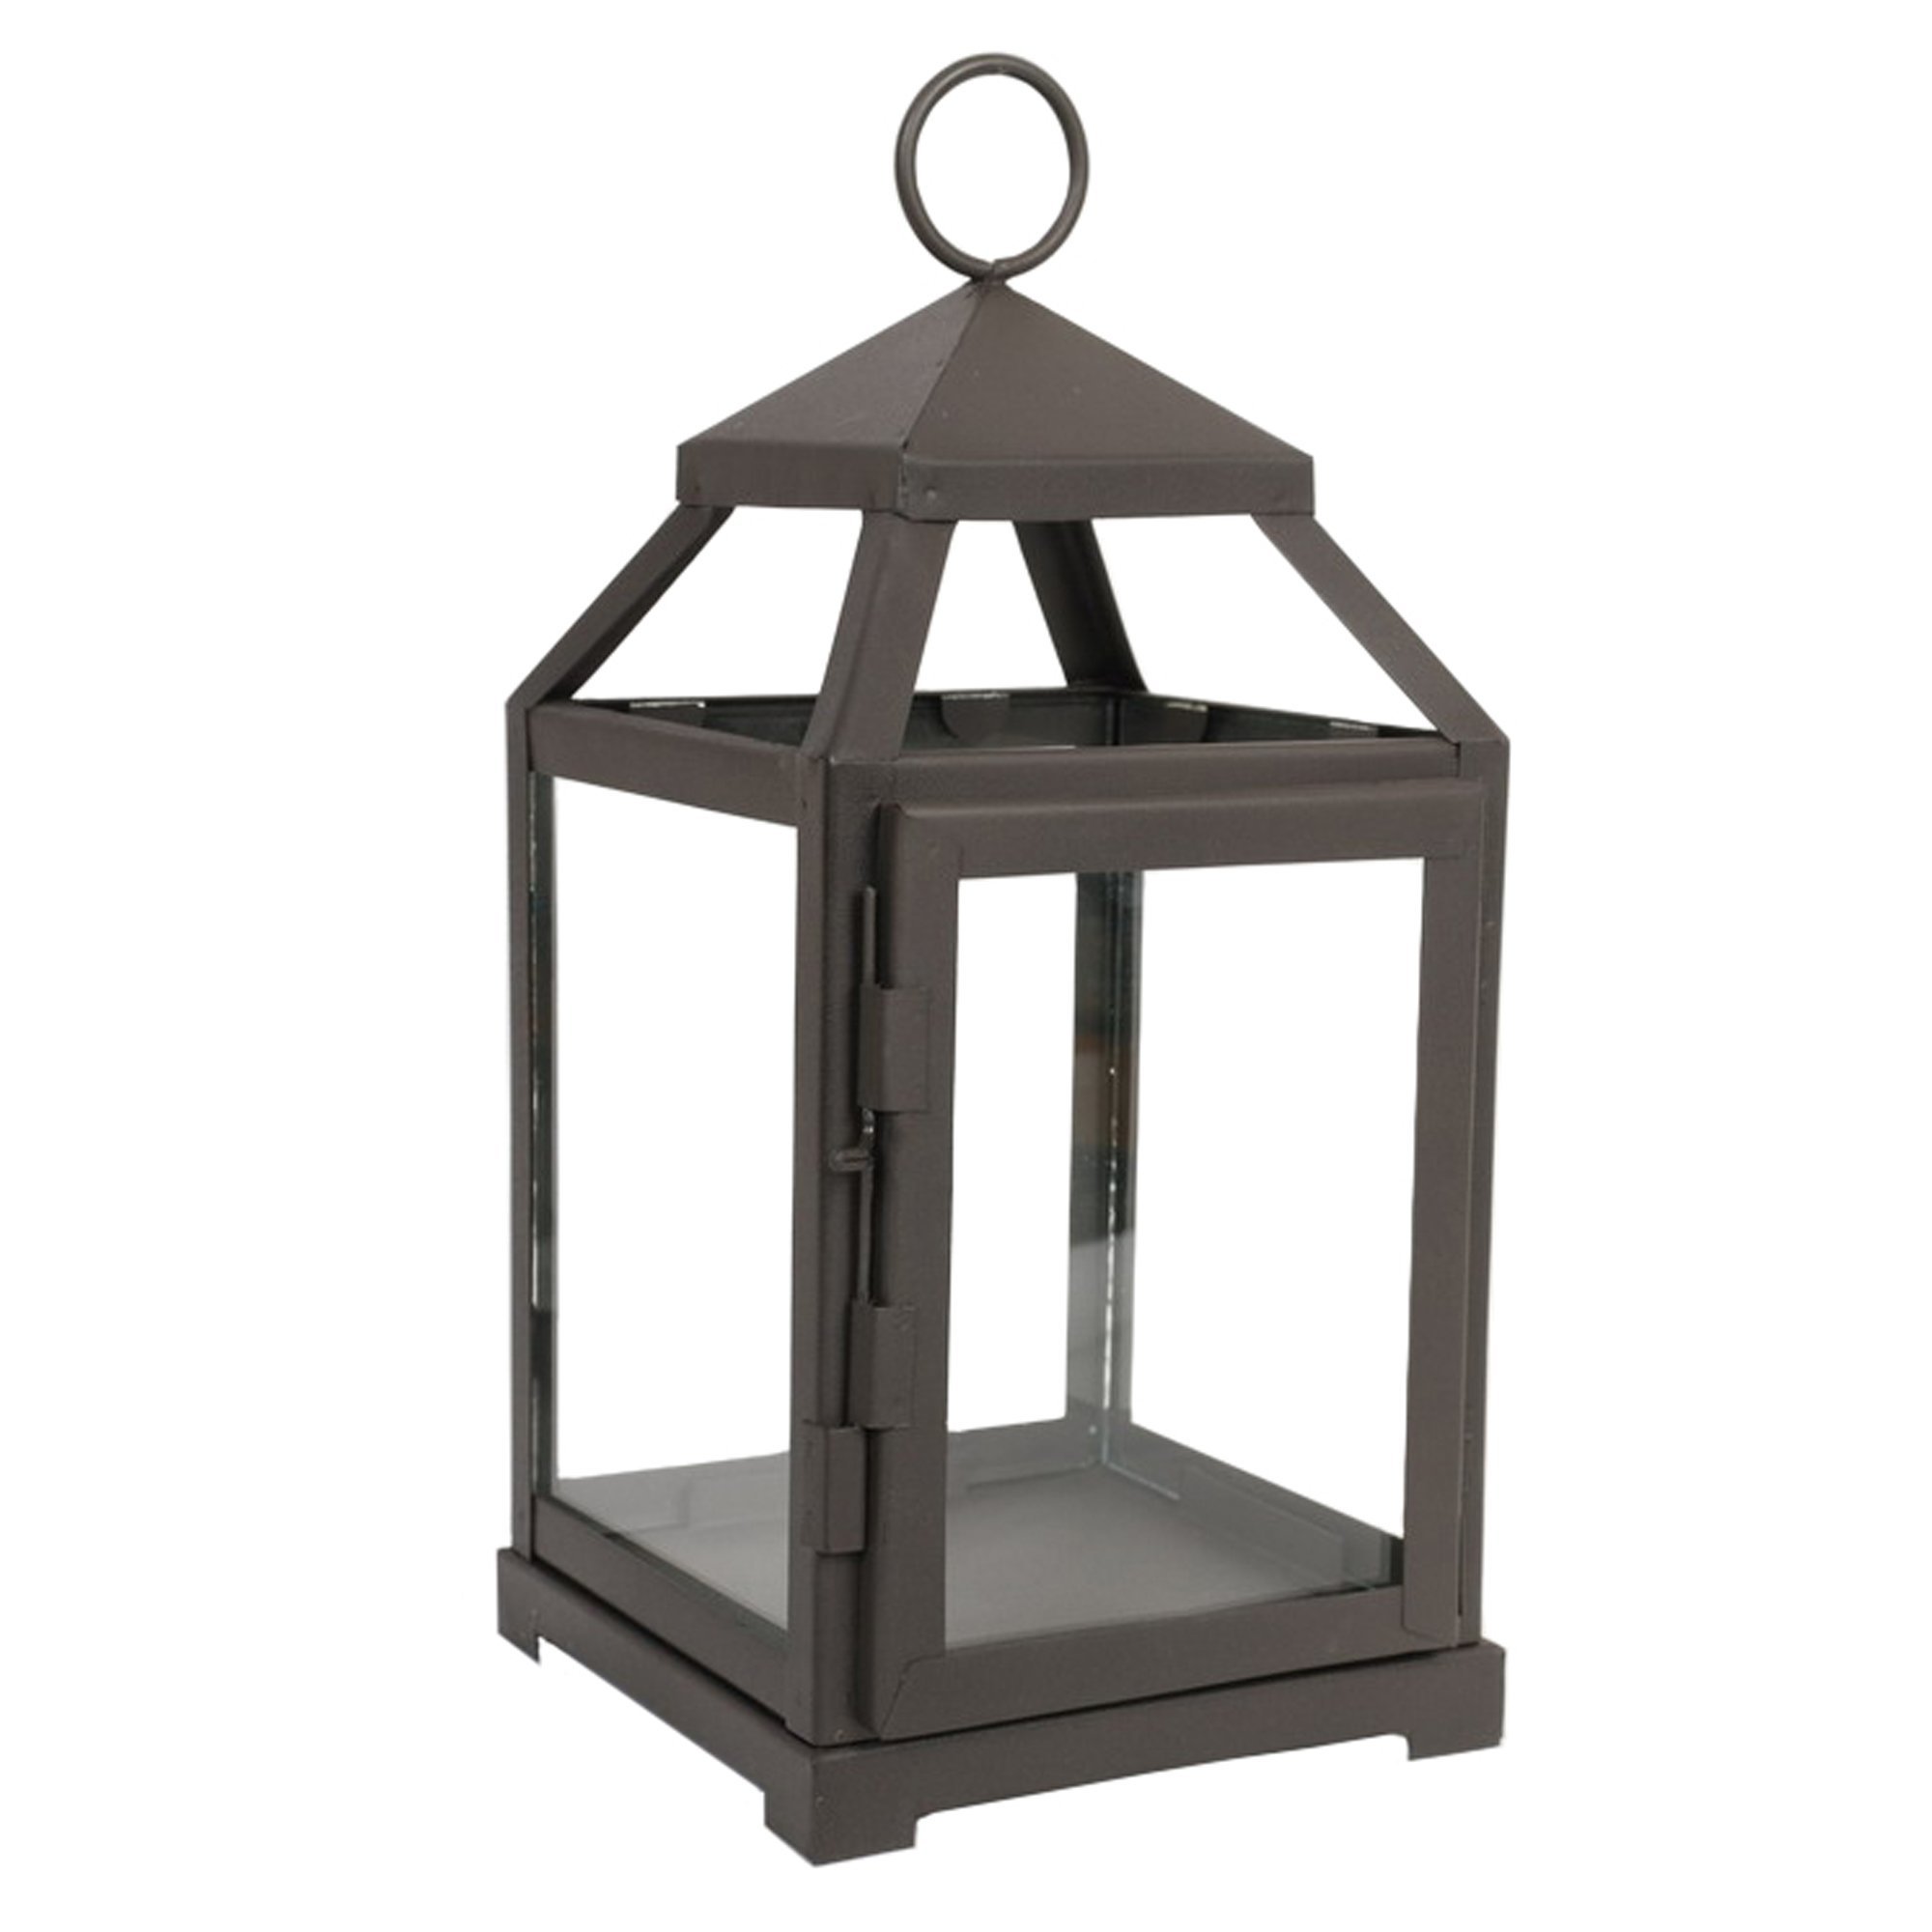 Hosley 12'' High Clear Glass & Iron, Classic Style Lantern. Ideal Gift for Festivities, Parties, Weddings, Aromatherapy and LED Spa Settings. O3